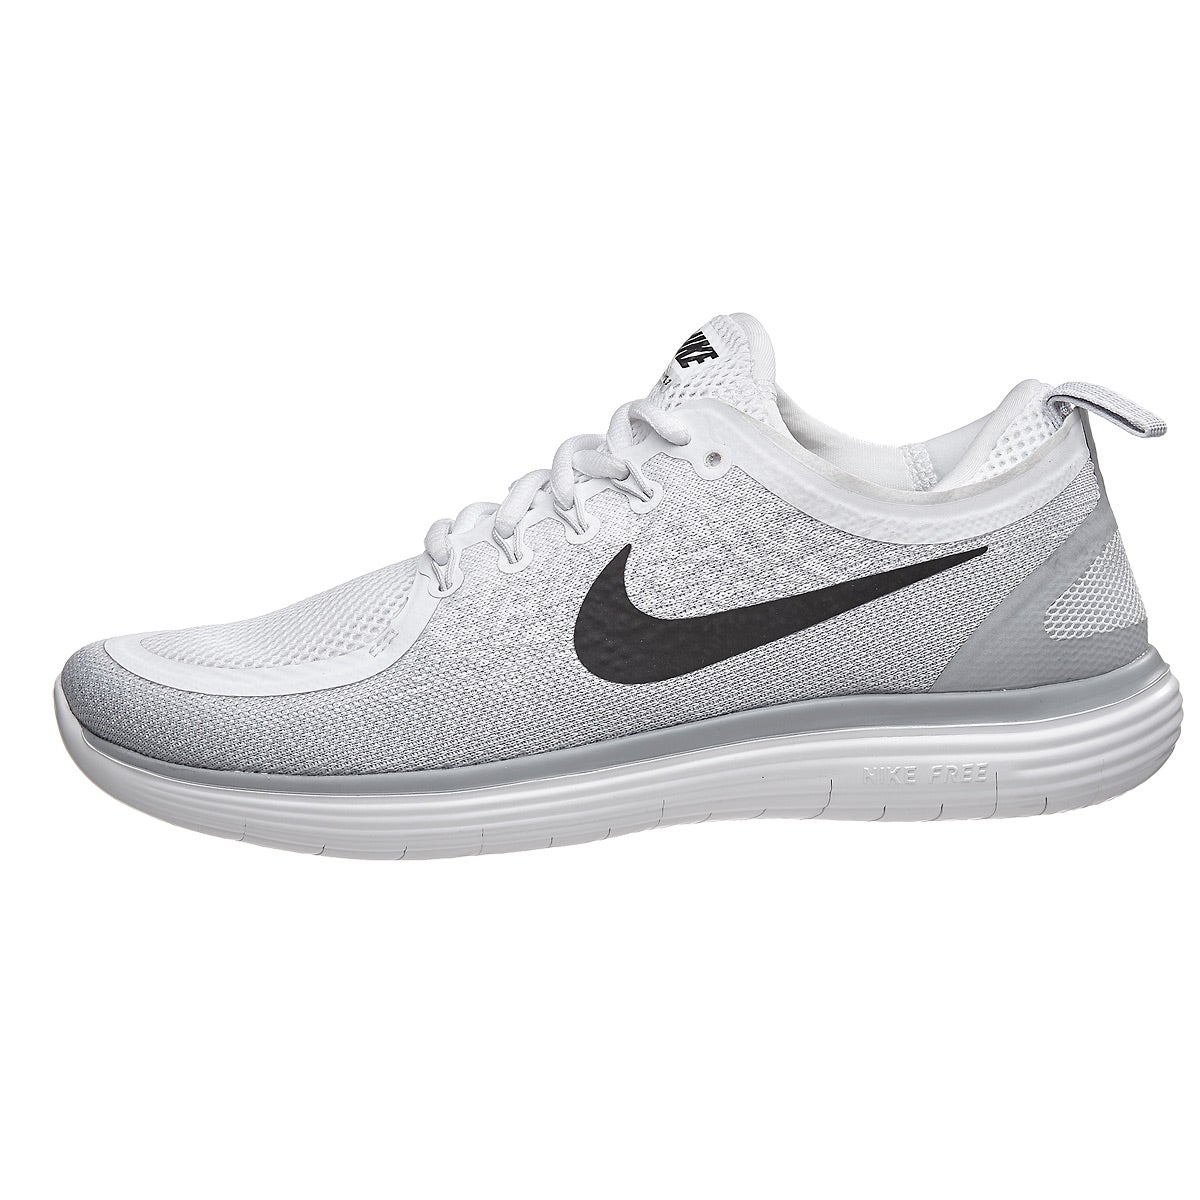 Nike Free Rn Distance 2 Women S Shoes White Black Pl 360 View Running Warehouse